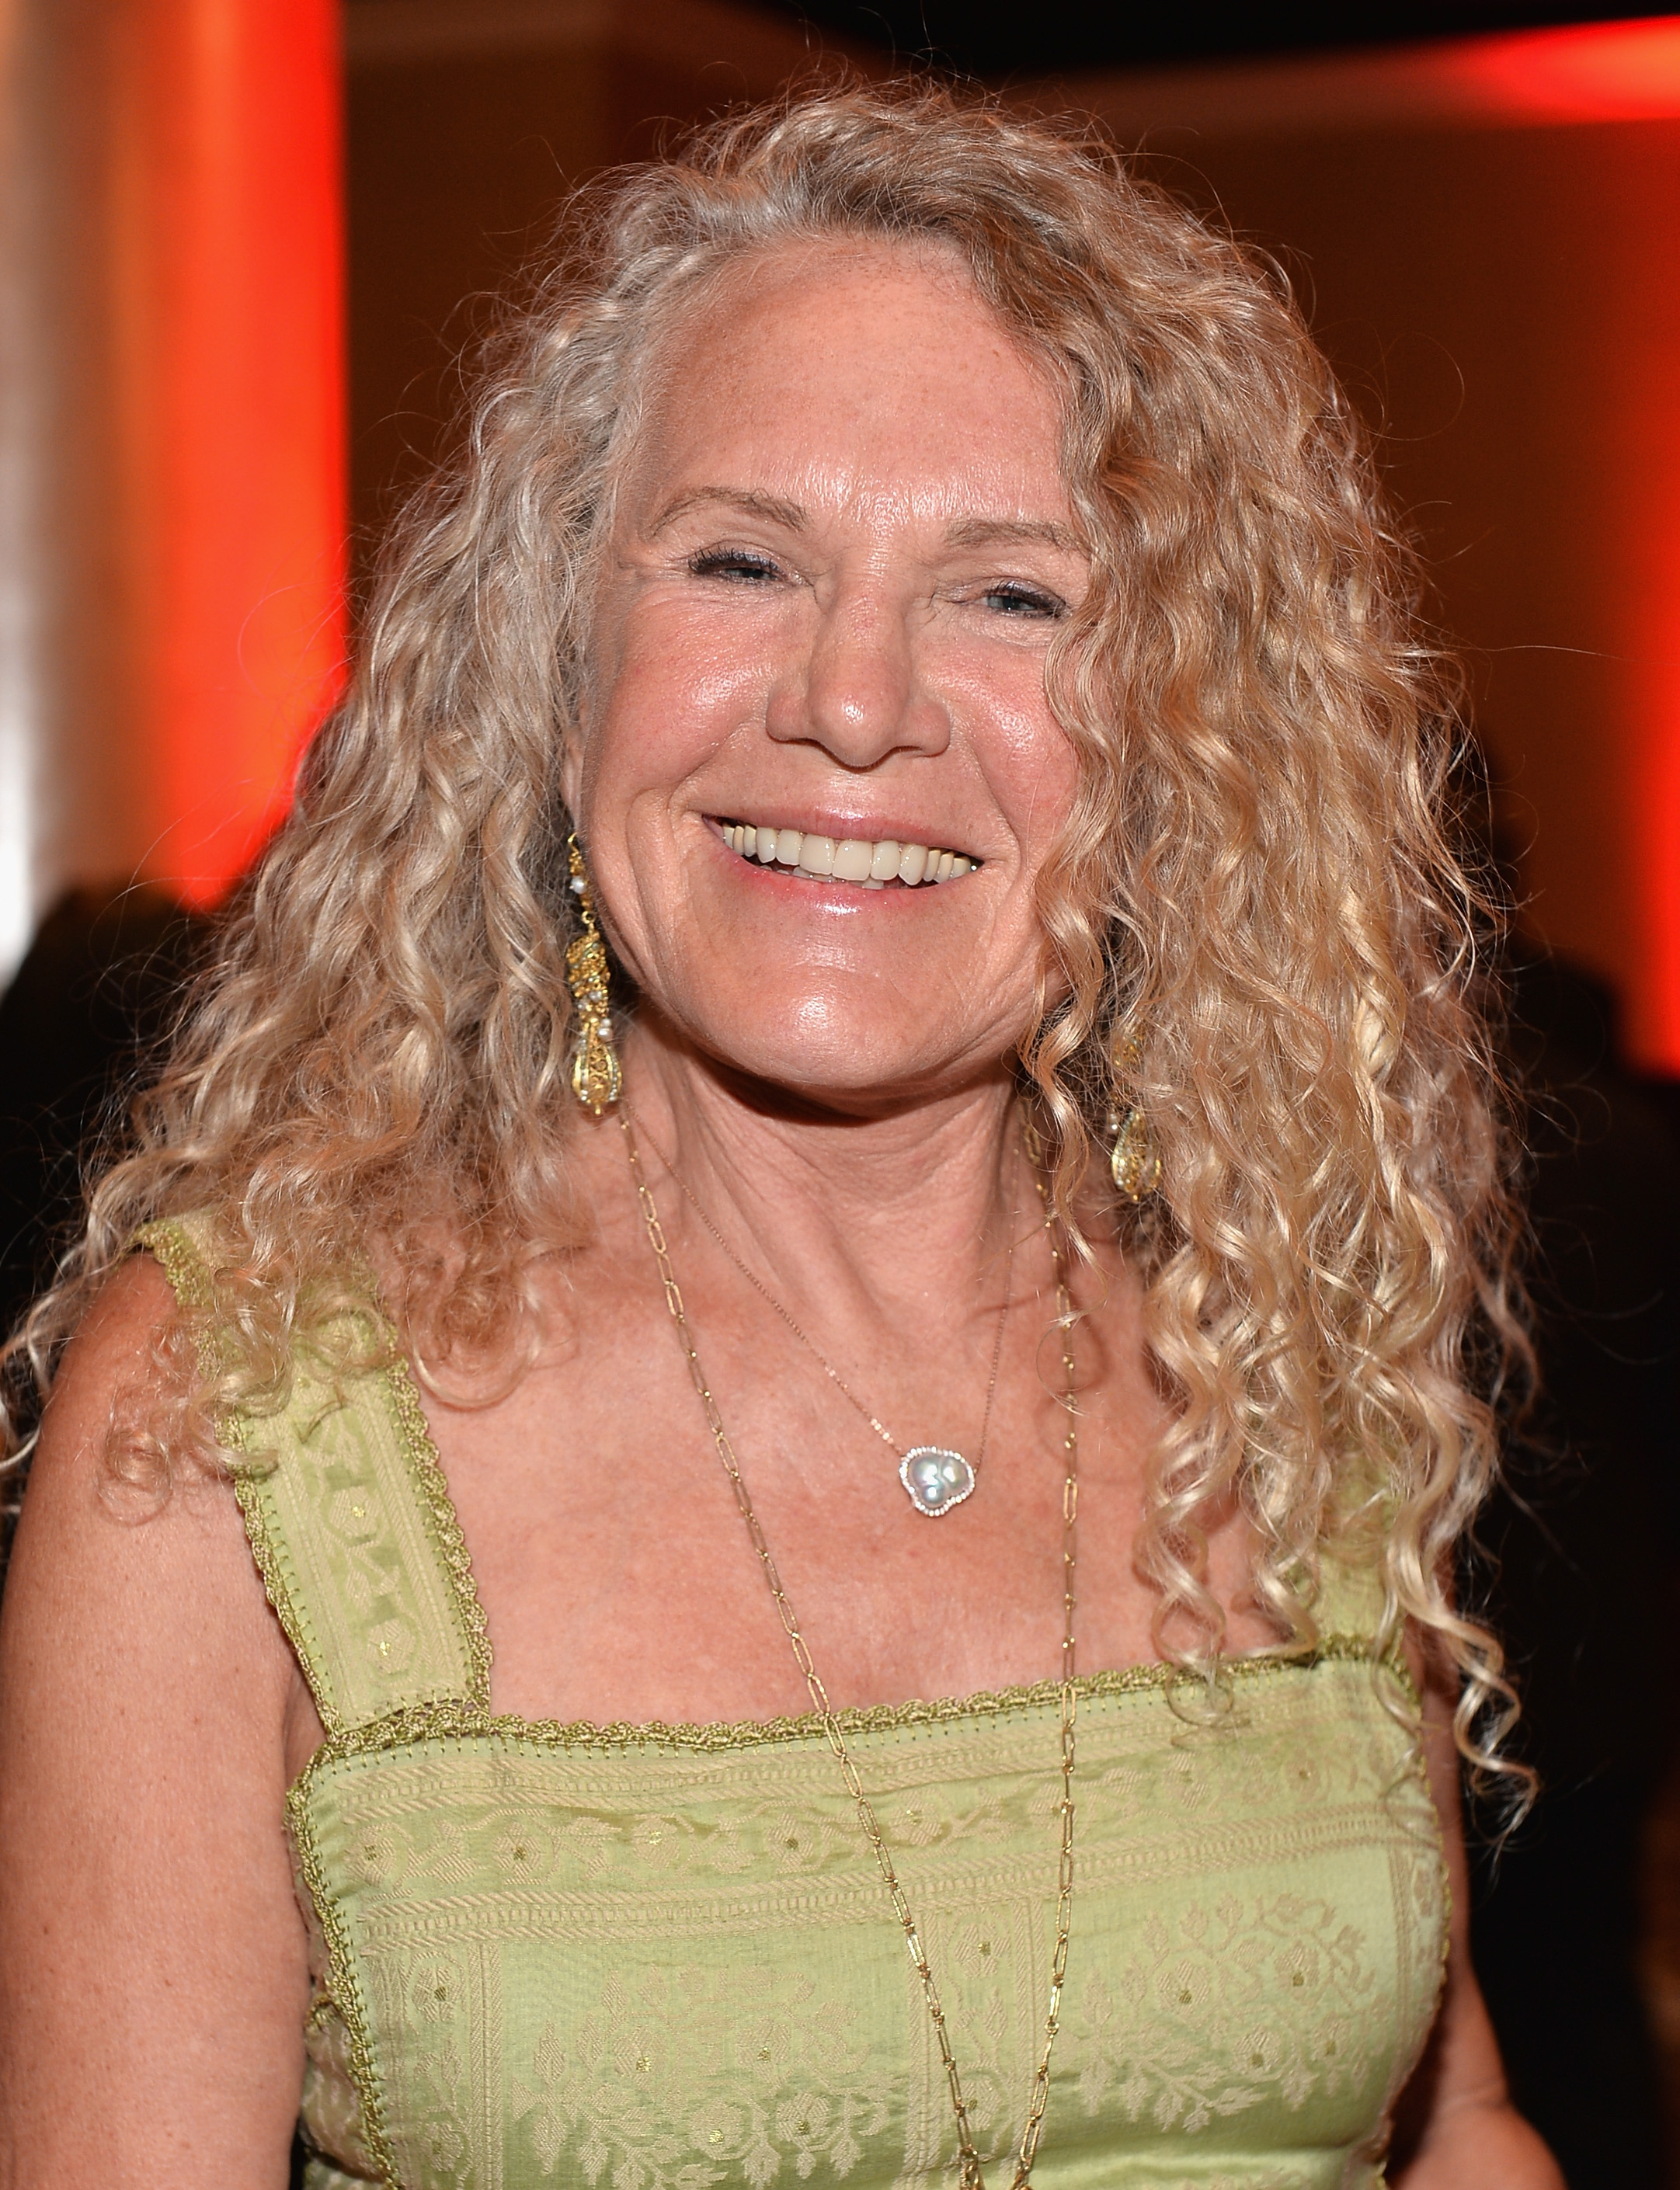 Christy Walton attends the 28th Annual Imagen Awards at The Beverly Hilton Hotel on August 16, 2013